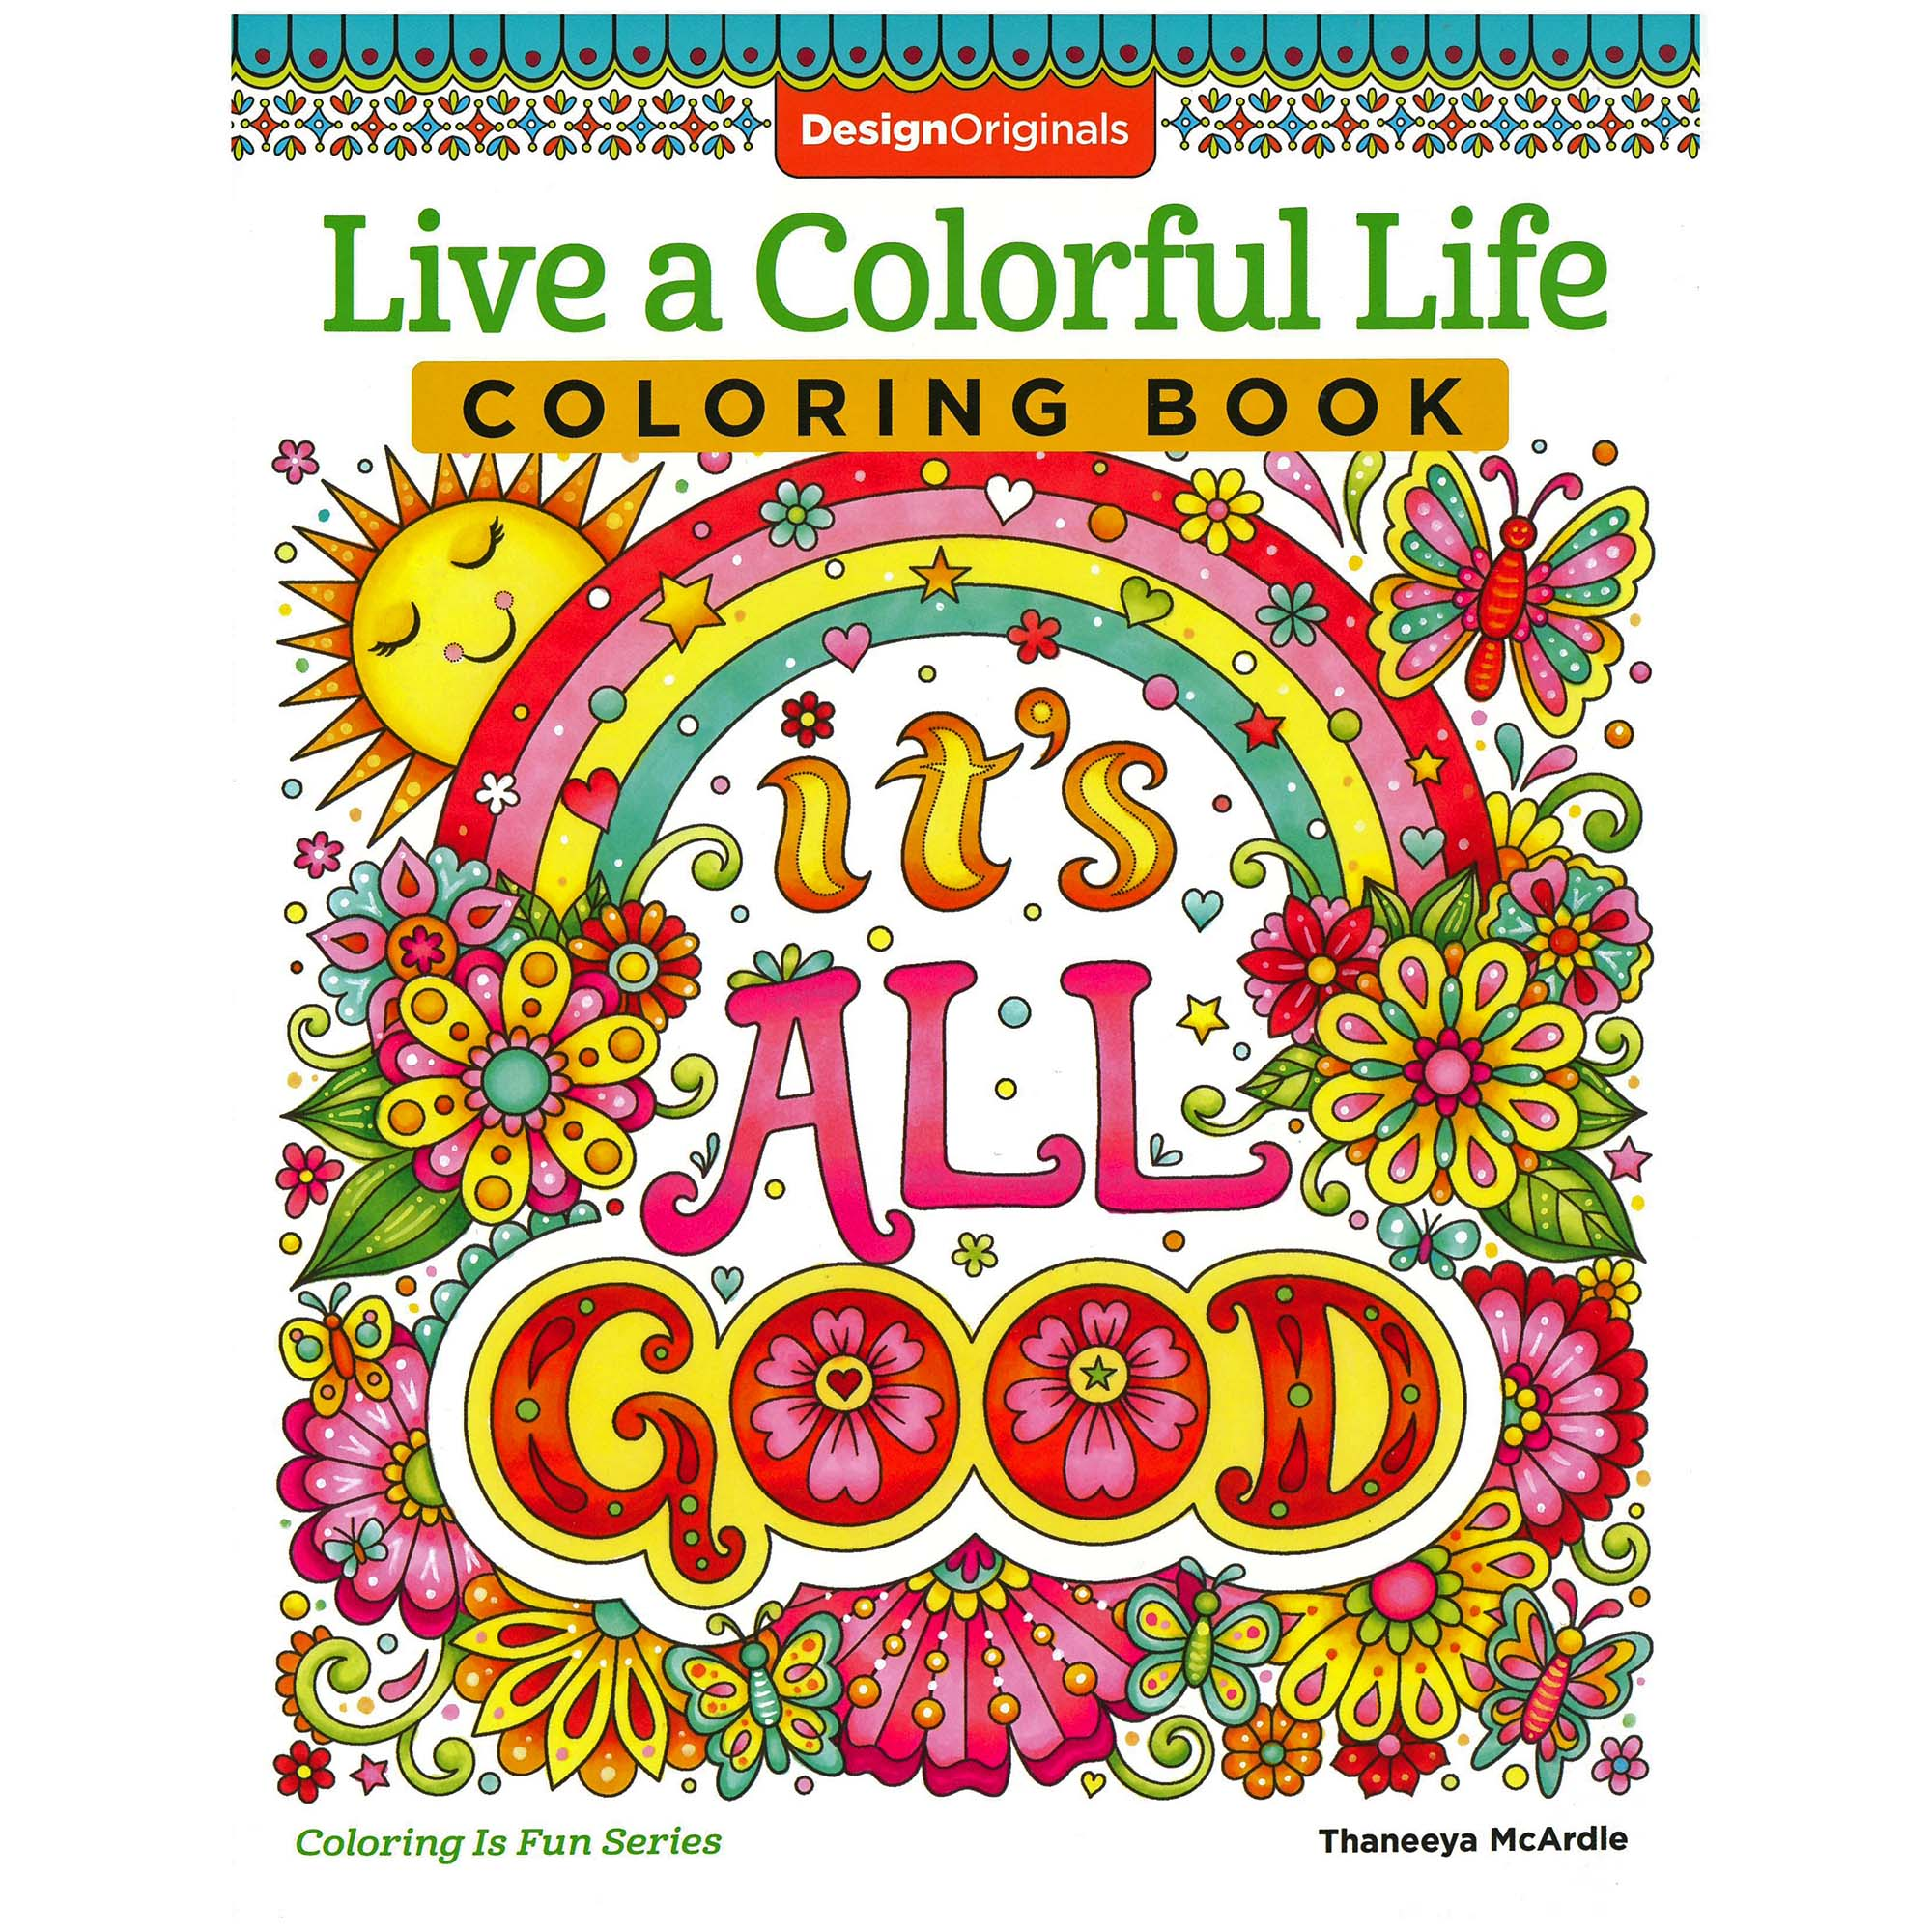 - Live A Colorful Life Adult Coloring Book - 40 Intricate Patterns, Designs,  And Positive Phrases - 80 Perforated Pages - Walmart.com - Walmart.com